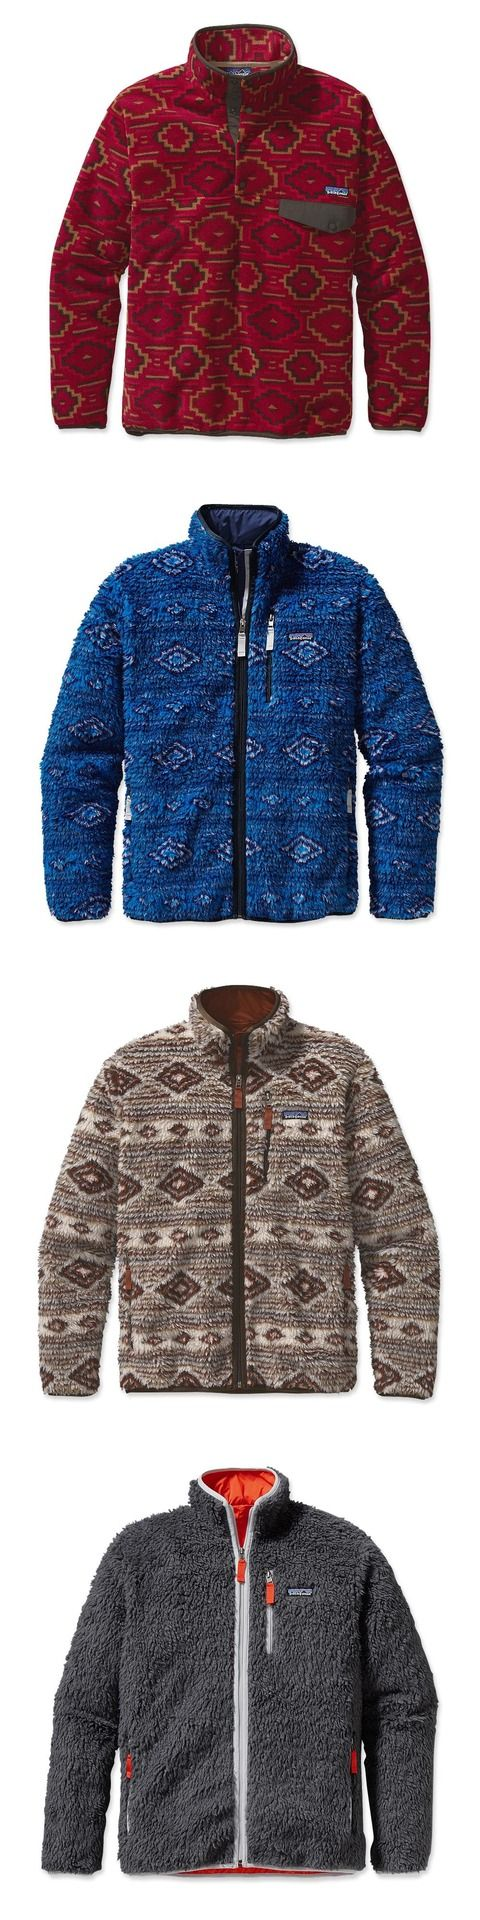 Classic winter wear from Patagonia. Which jacket for this fall? @patagonia